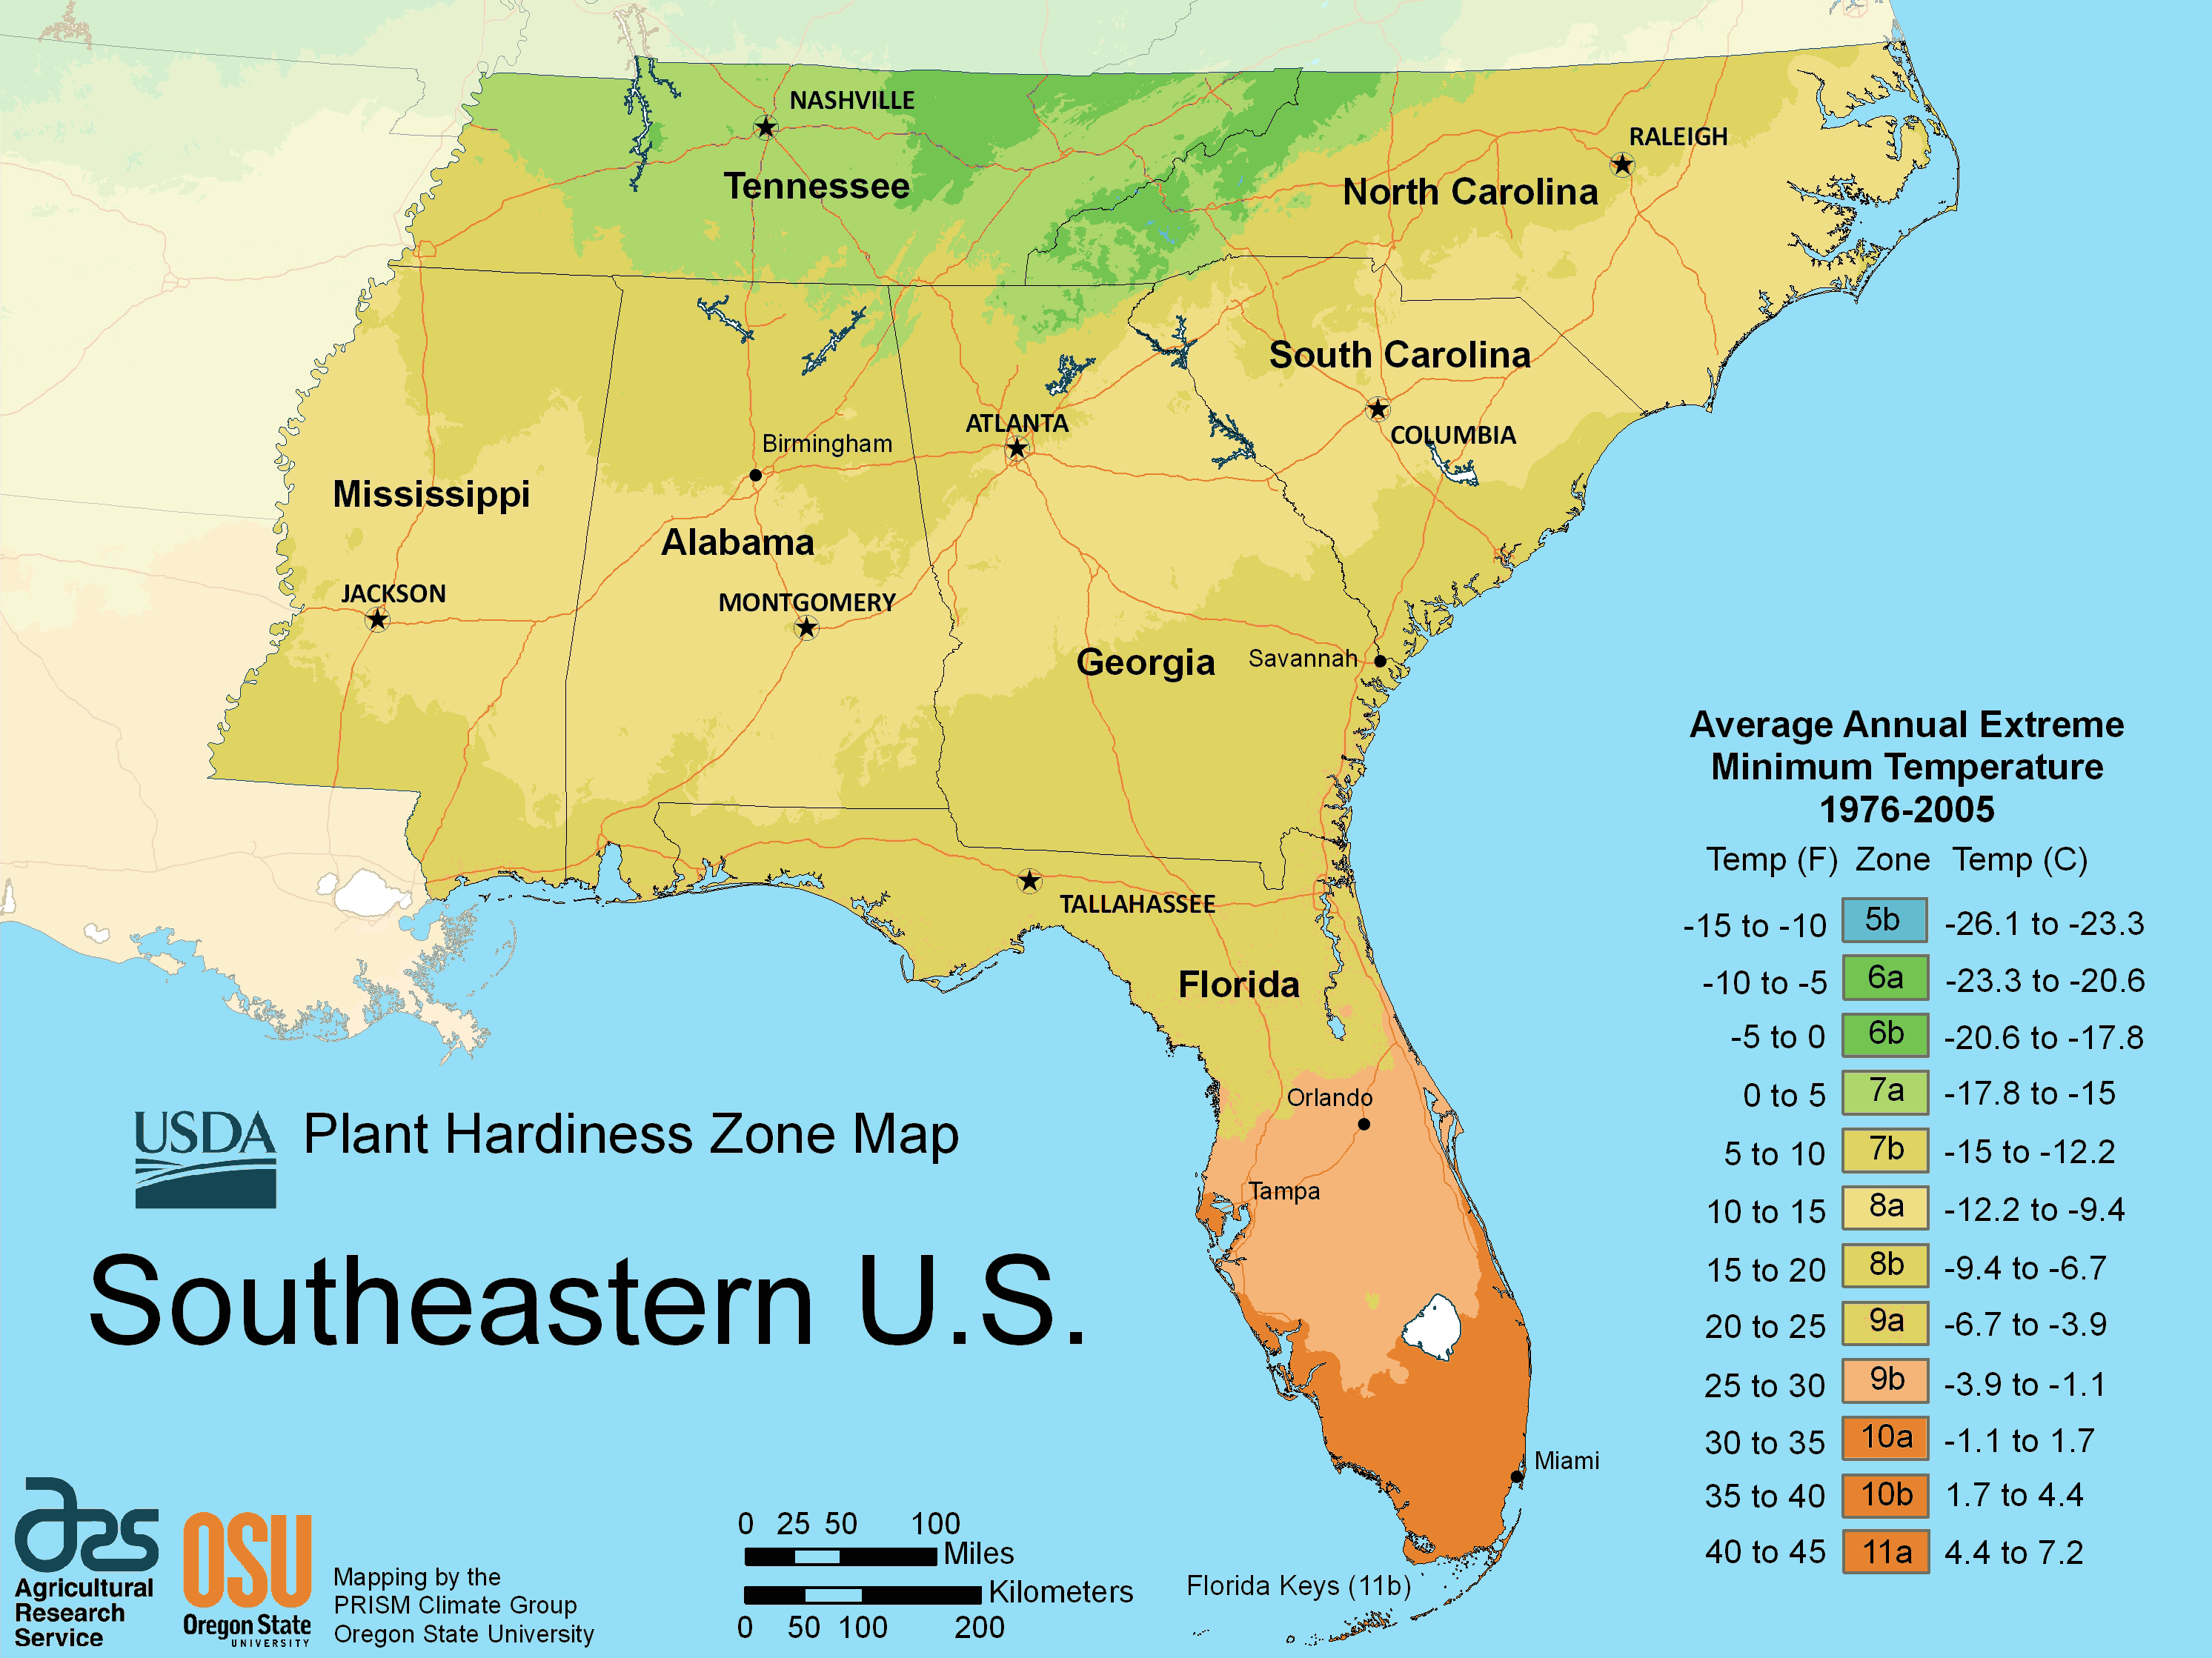 South East Us Plant Hardiness Zone Map  Mapsofnet - Map of southeast us